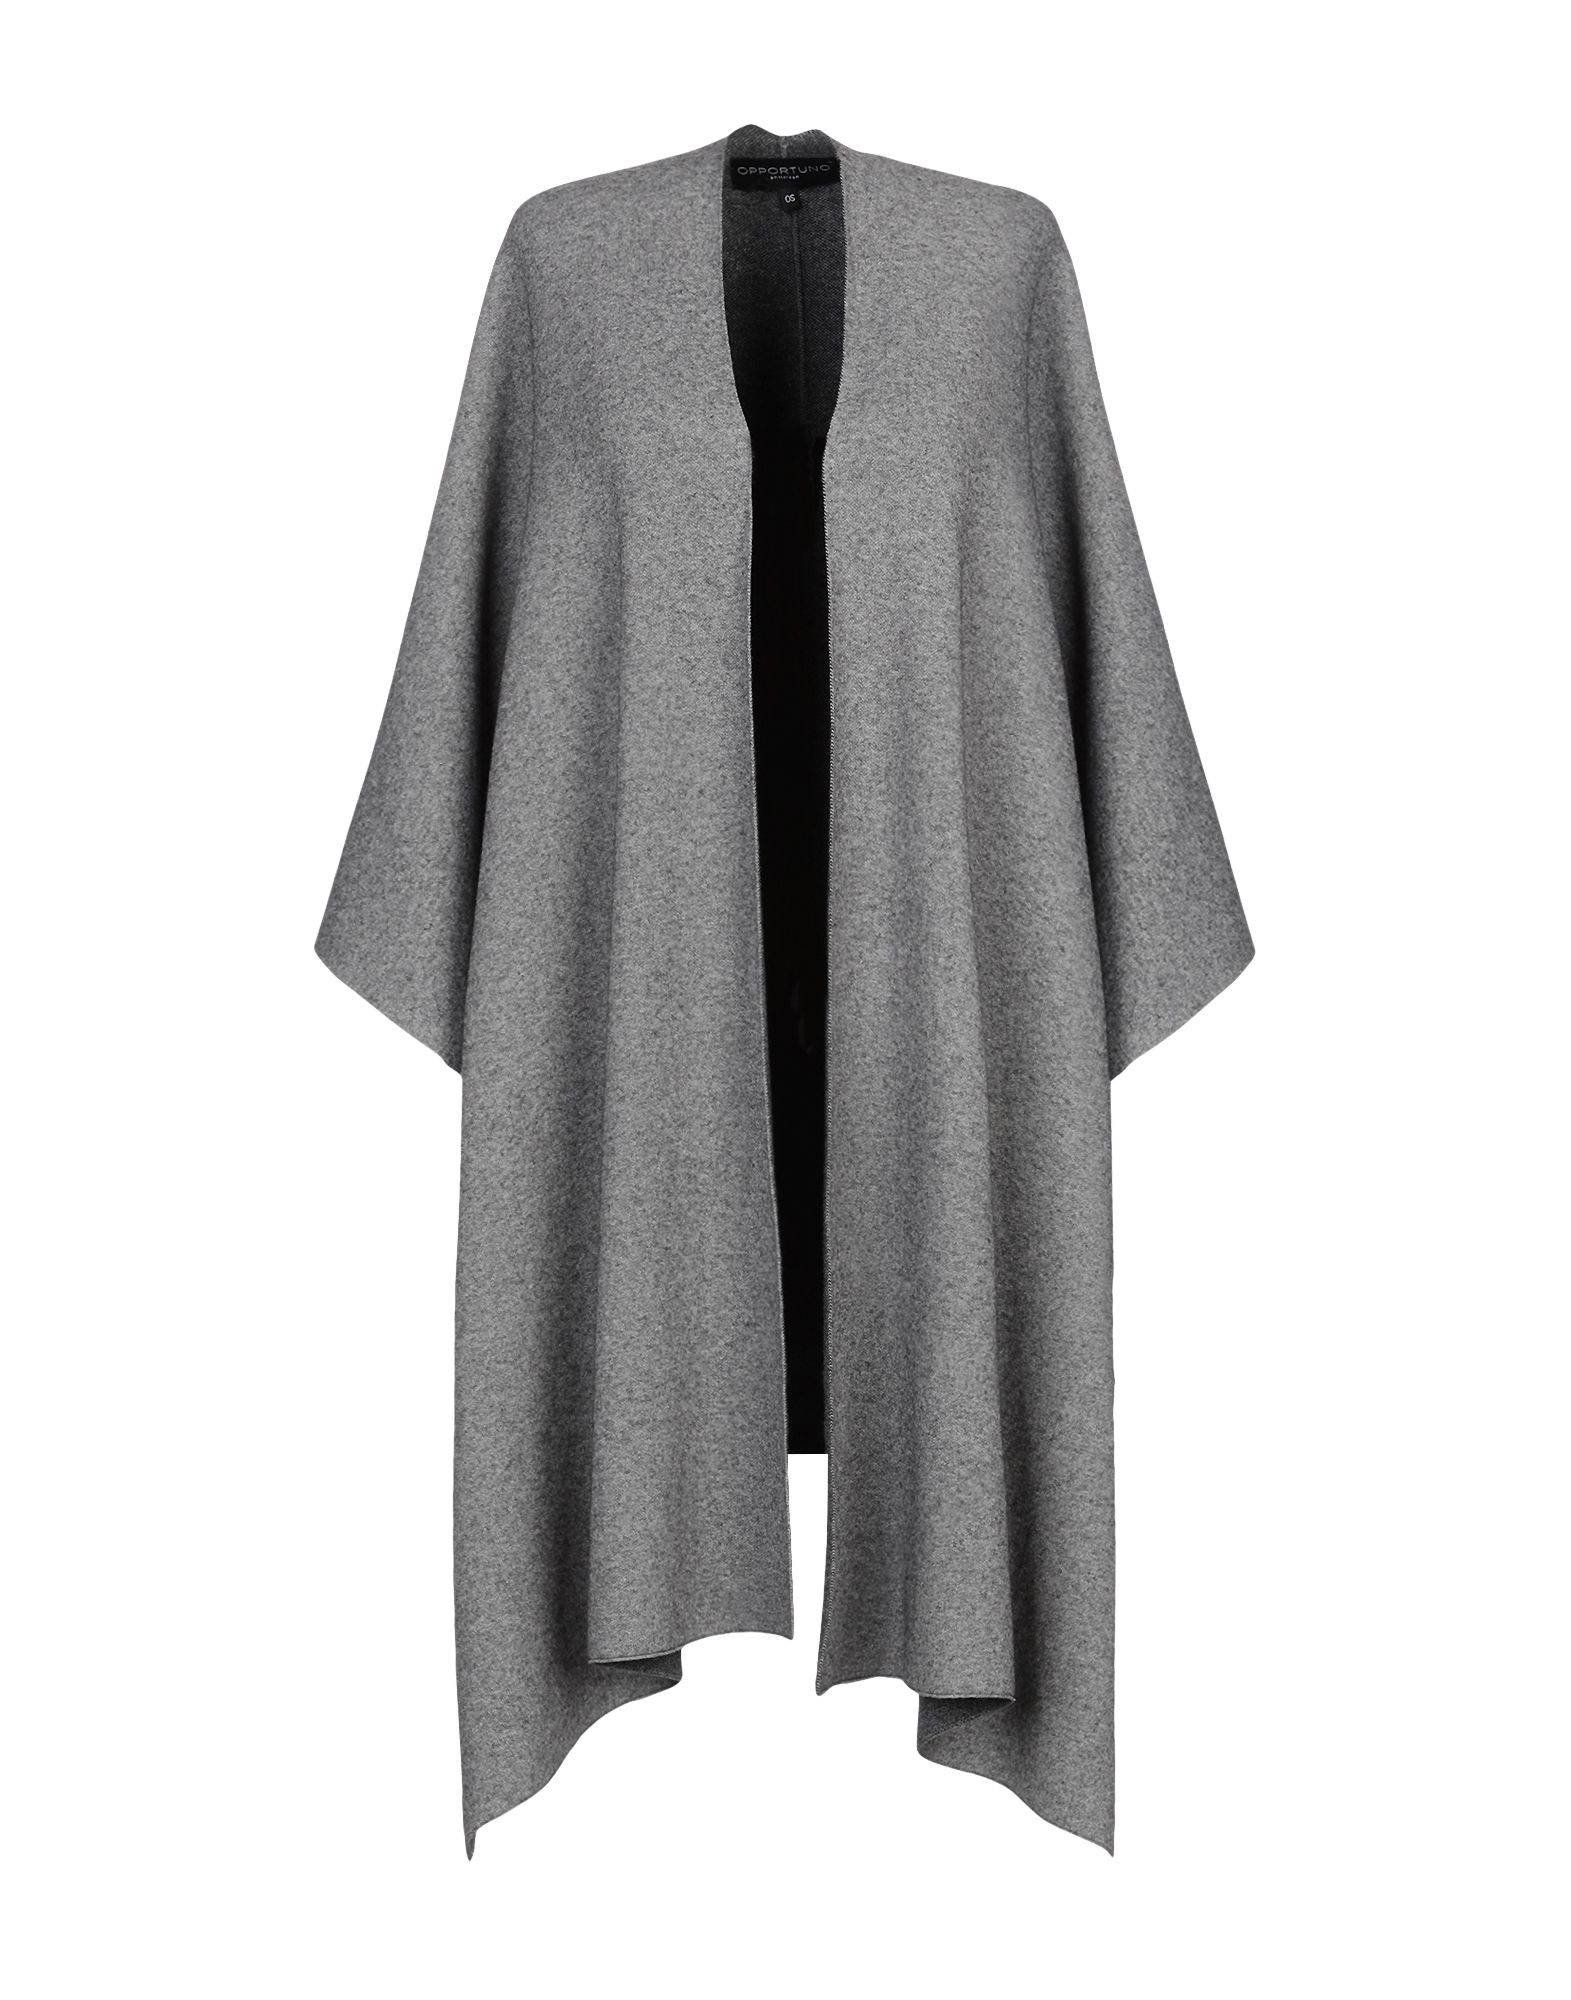 opportuno wraps, capes & ponchos scarves for women - Buy best